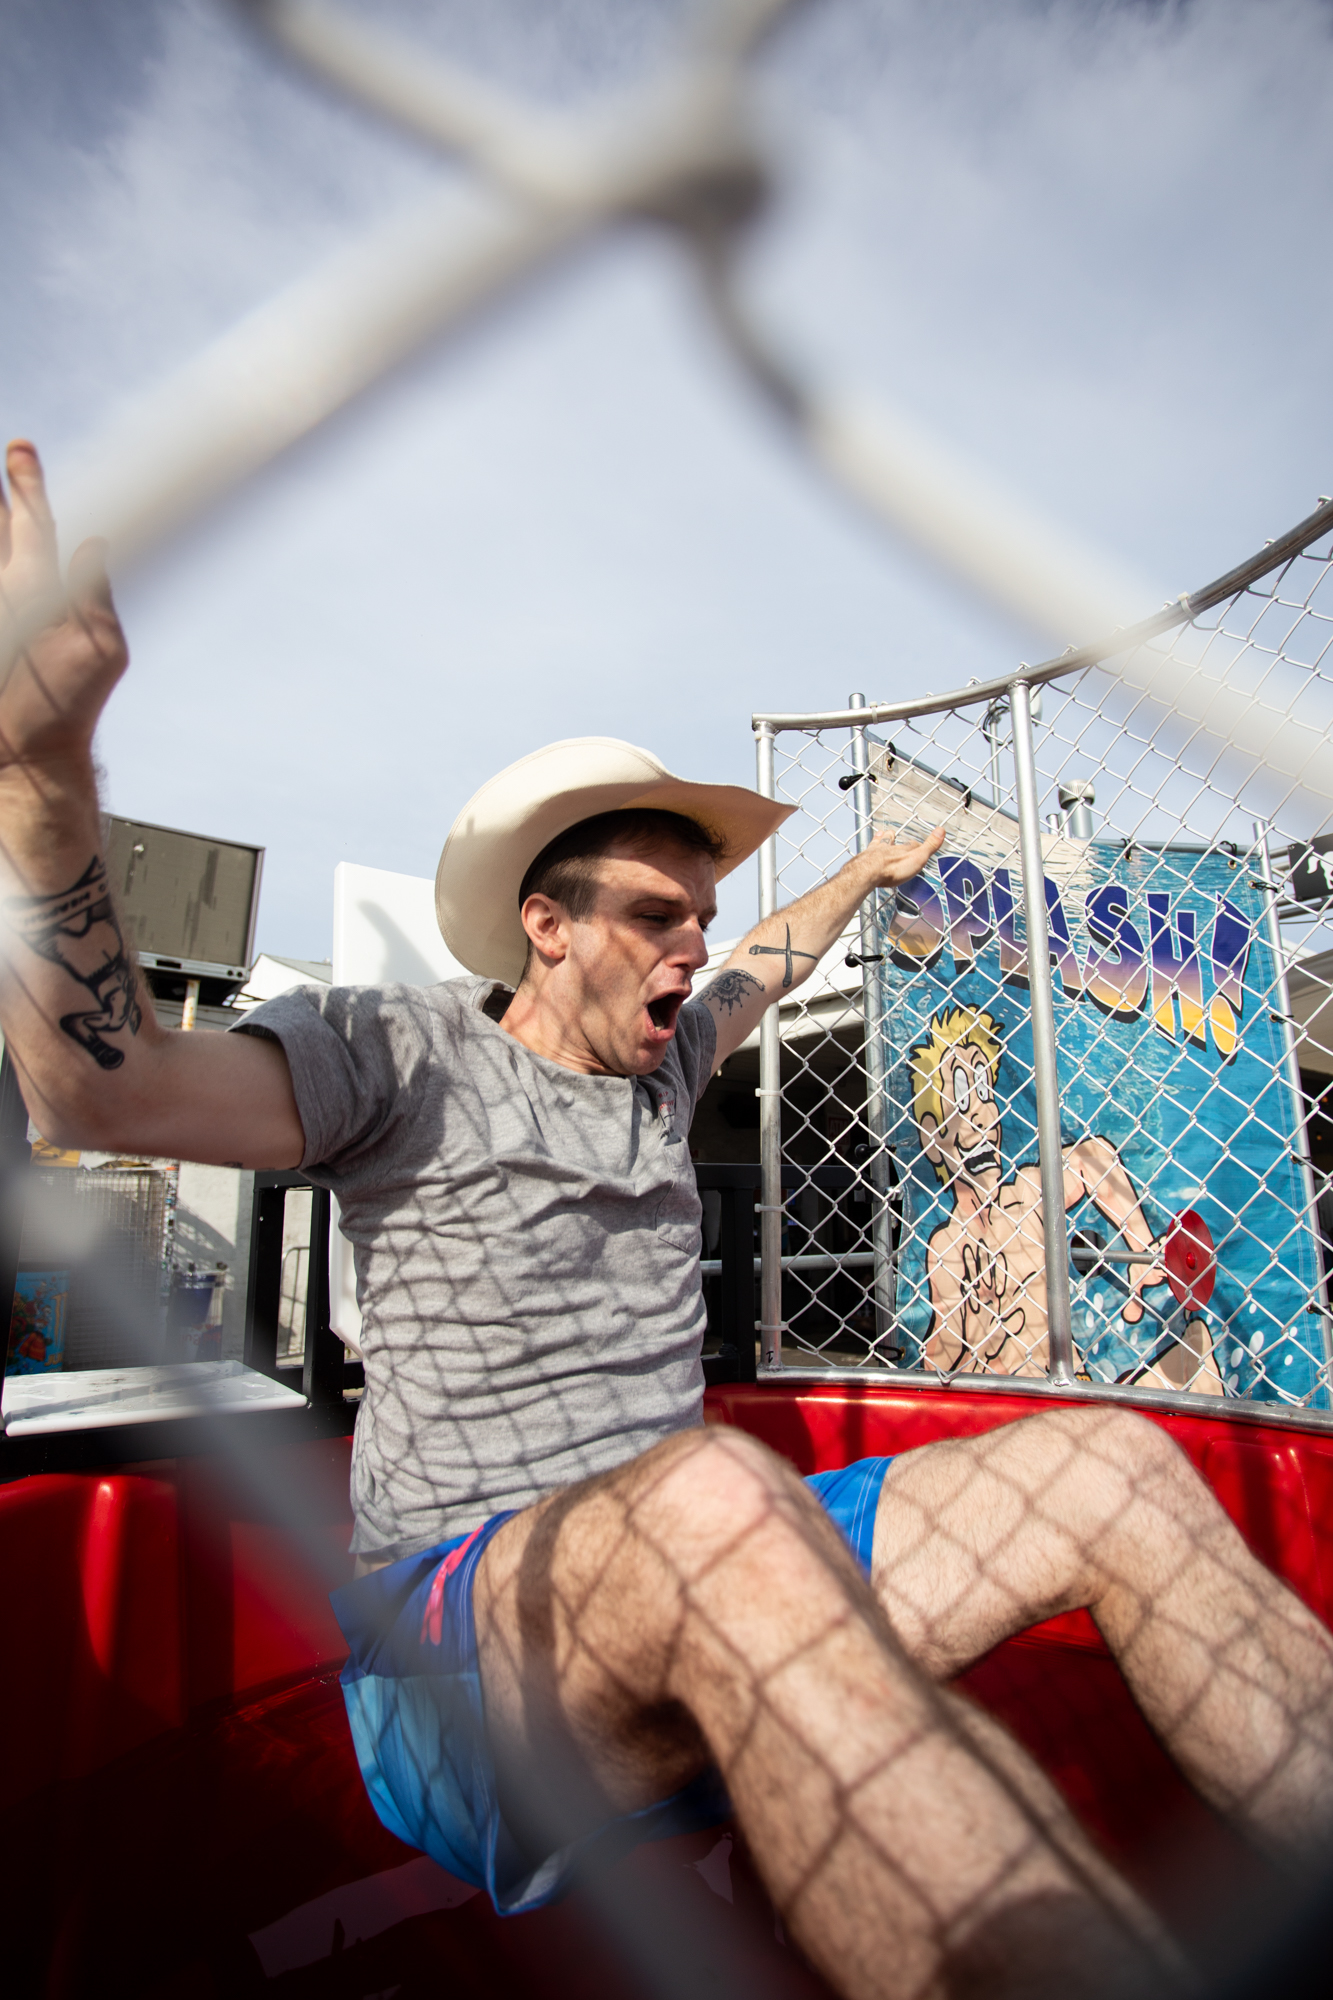 Mikey Hart participates in a dunk tank for LGBTQ+ equality foundation The Ally Coalition at Shadow of the City festival in Asbury Park, NJ on August 25, 2018.